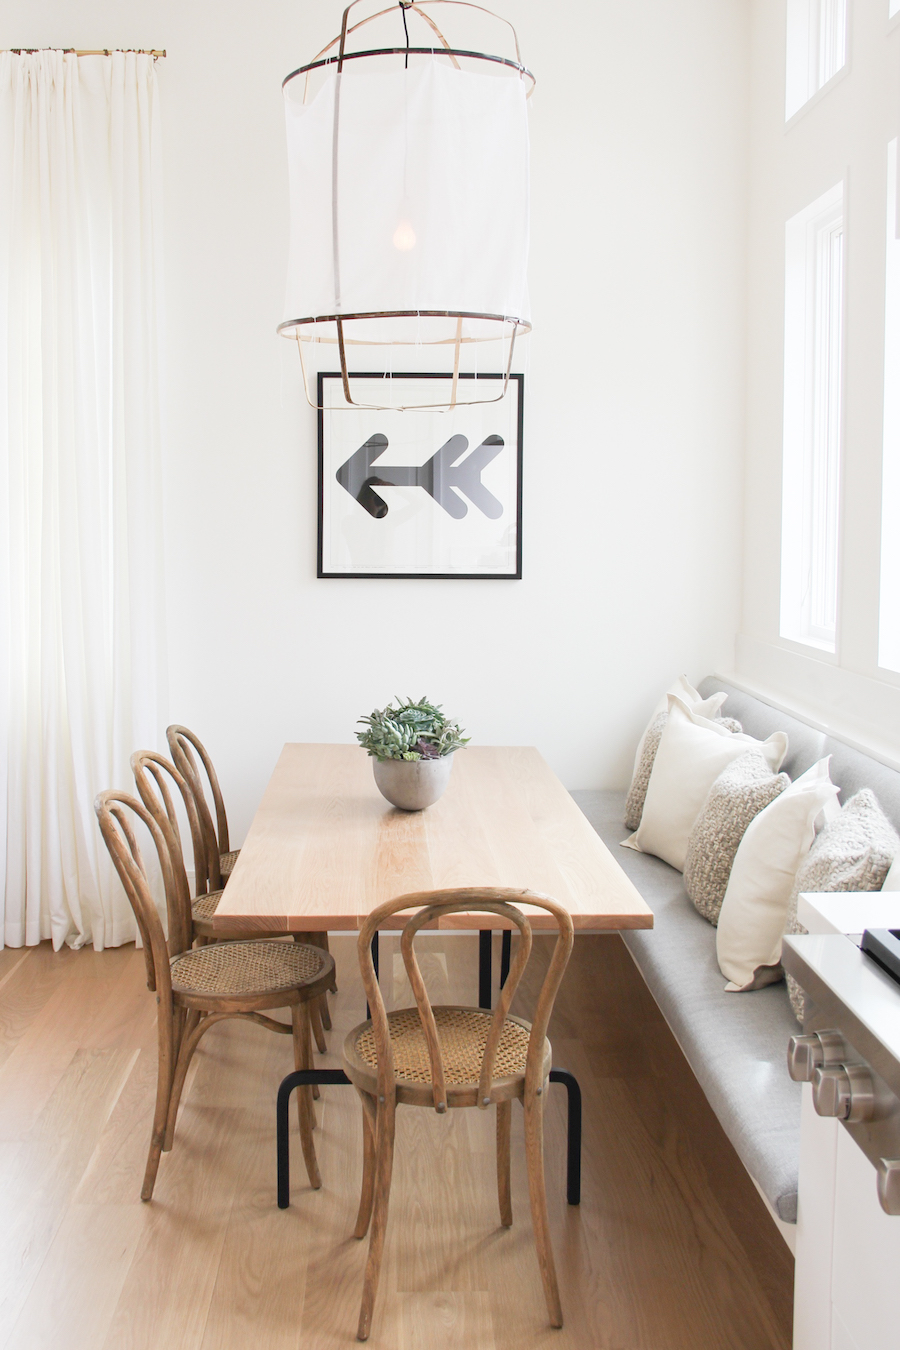 Natural wood bentwood chairs with banquette via 30collins